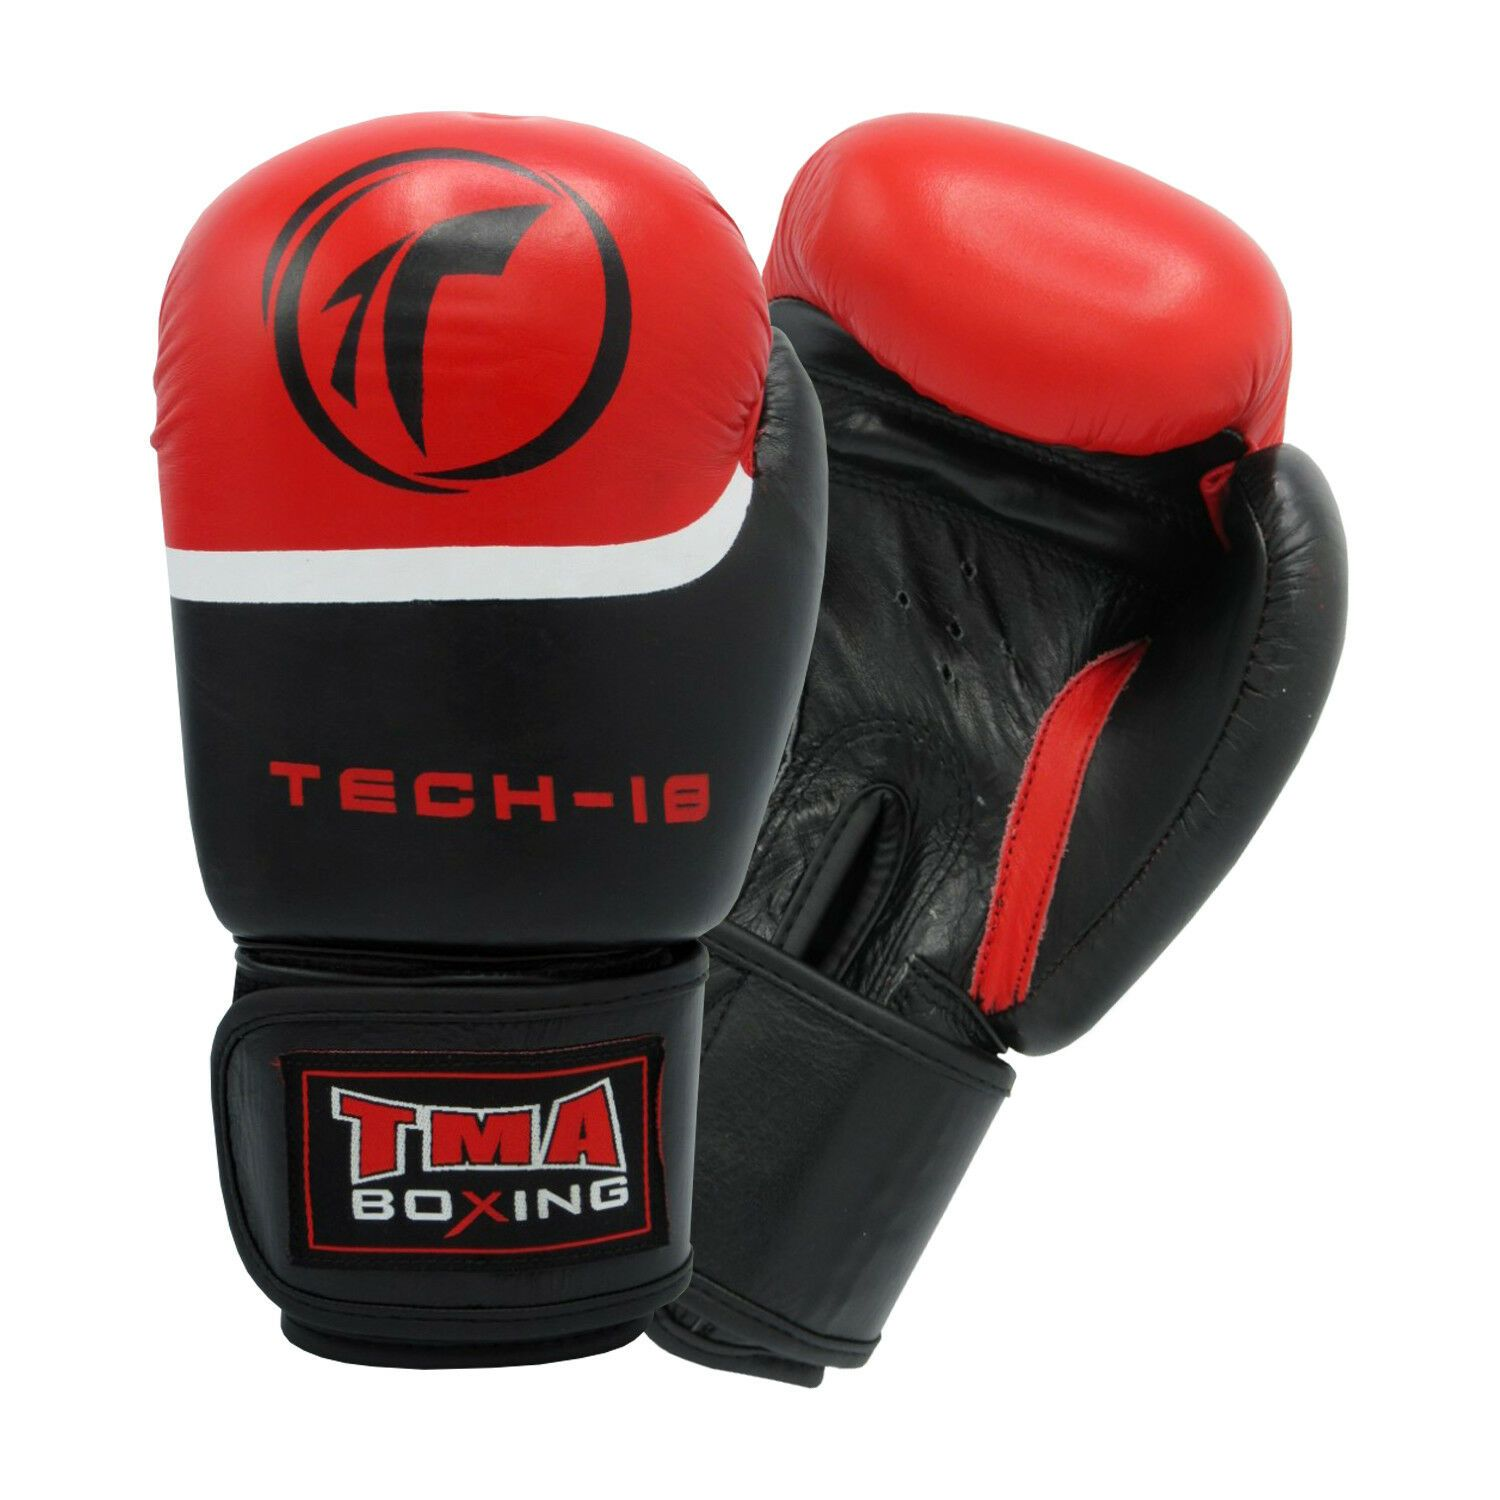 Ringside Stealth Leather Lace Up Boxing Gloves Black